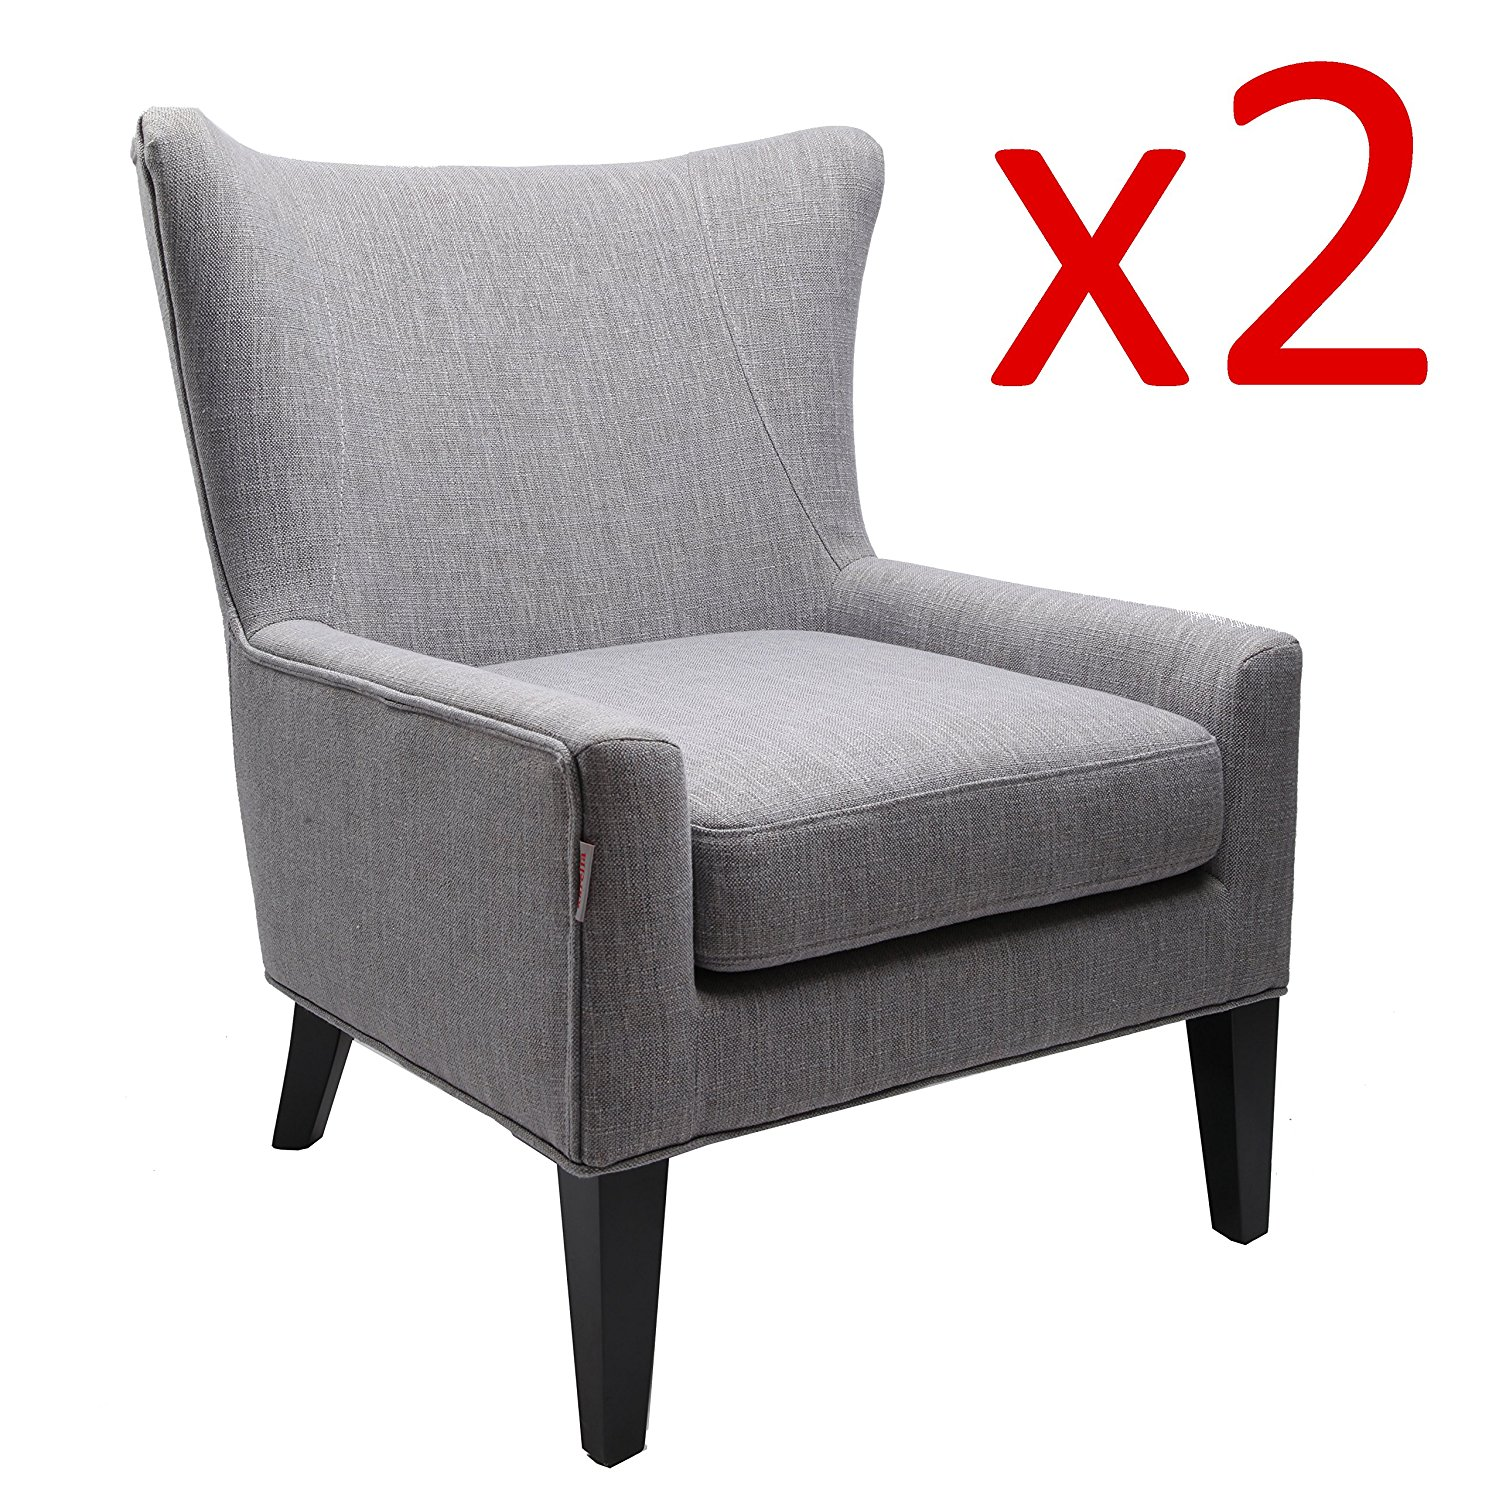 Finnkarelia tall wingback fabric accent chair upholstered armchair modern club sofa contemporary living room bedroom seat